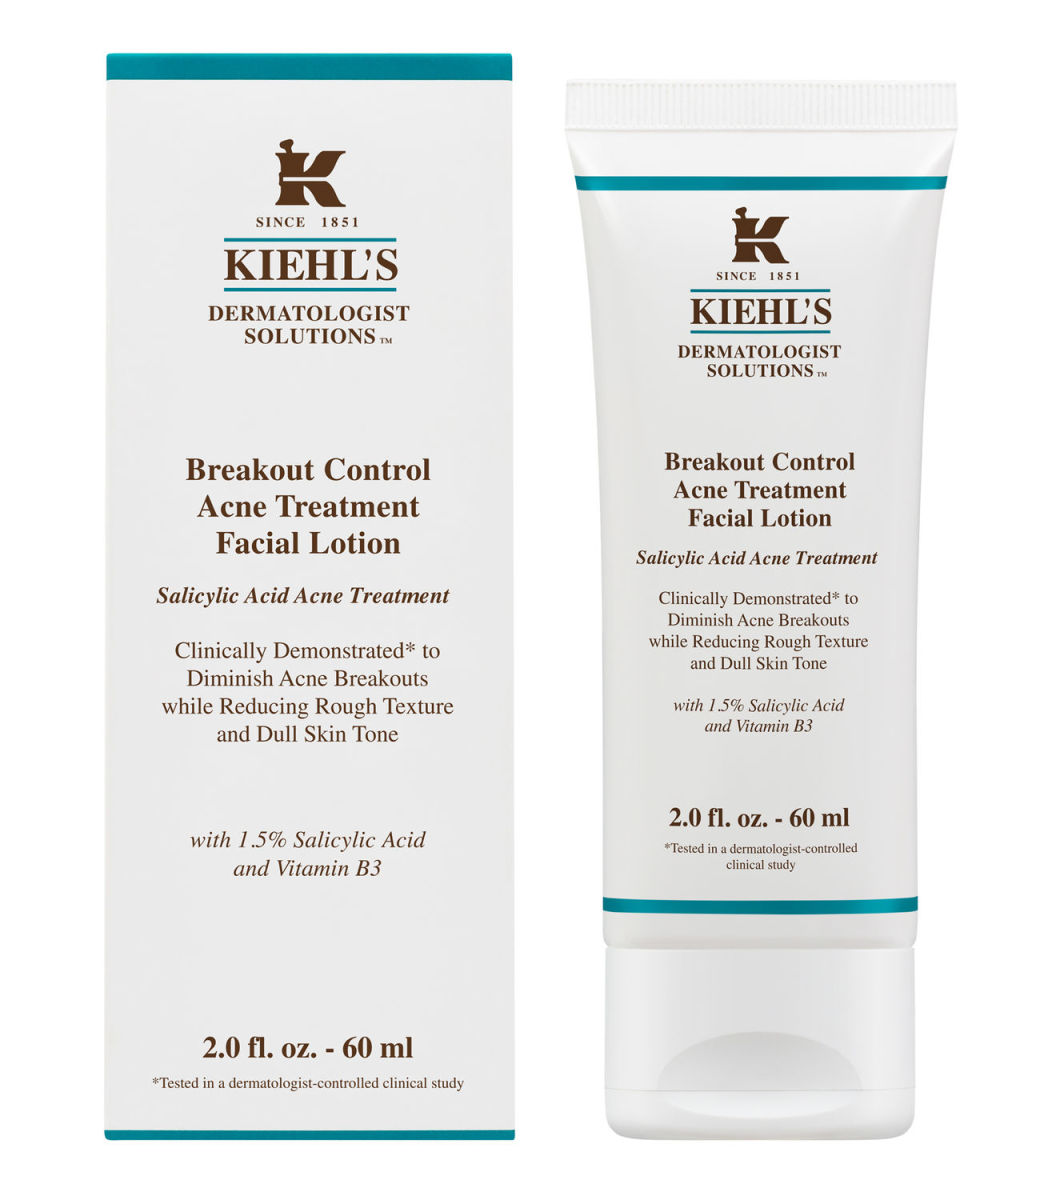 Kiehl's Breakout Control Acne Treatment Facial Lotion, $48, available at Kiehl's.